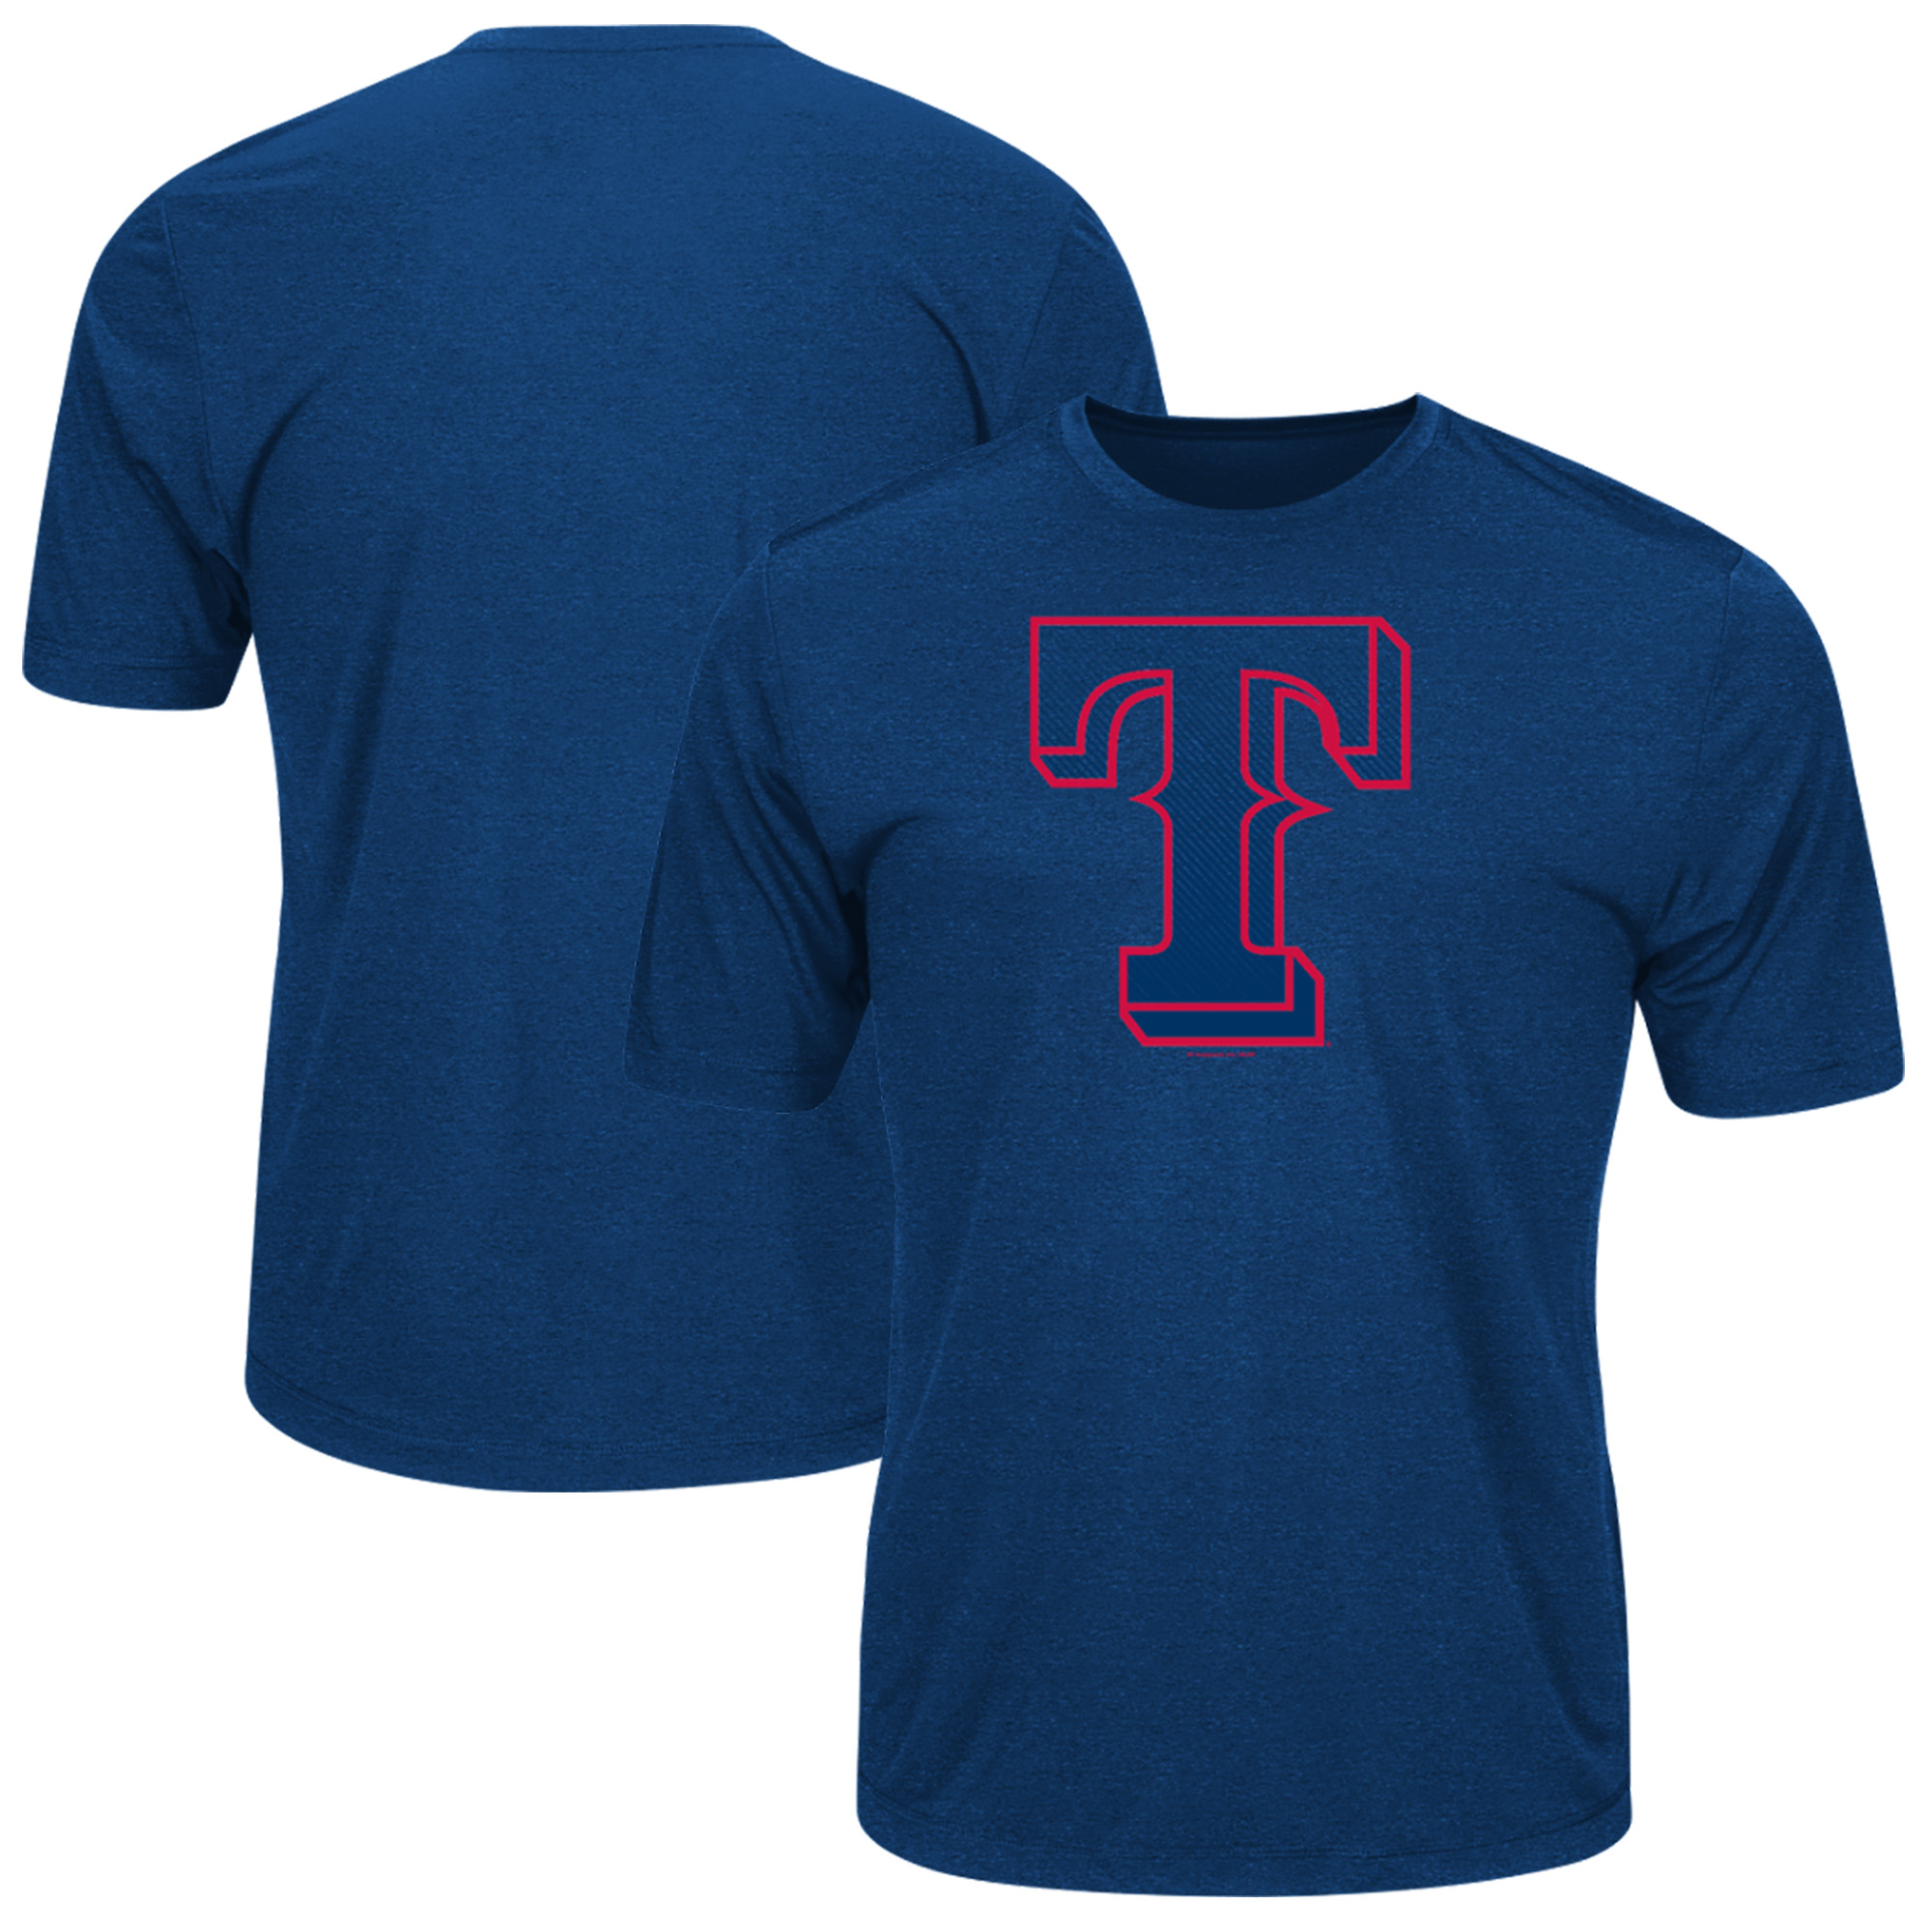 Men's Majestic Royal Texas Rangers Big & Tall Statement Logo T-Shirt